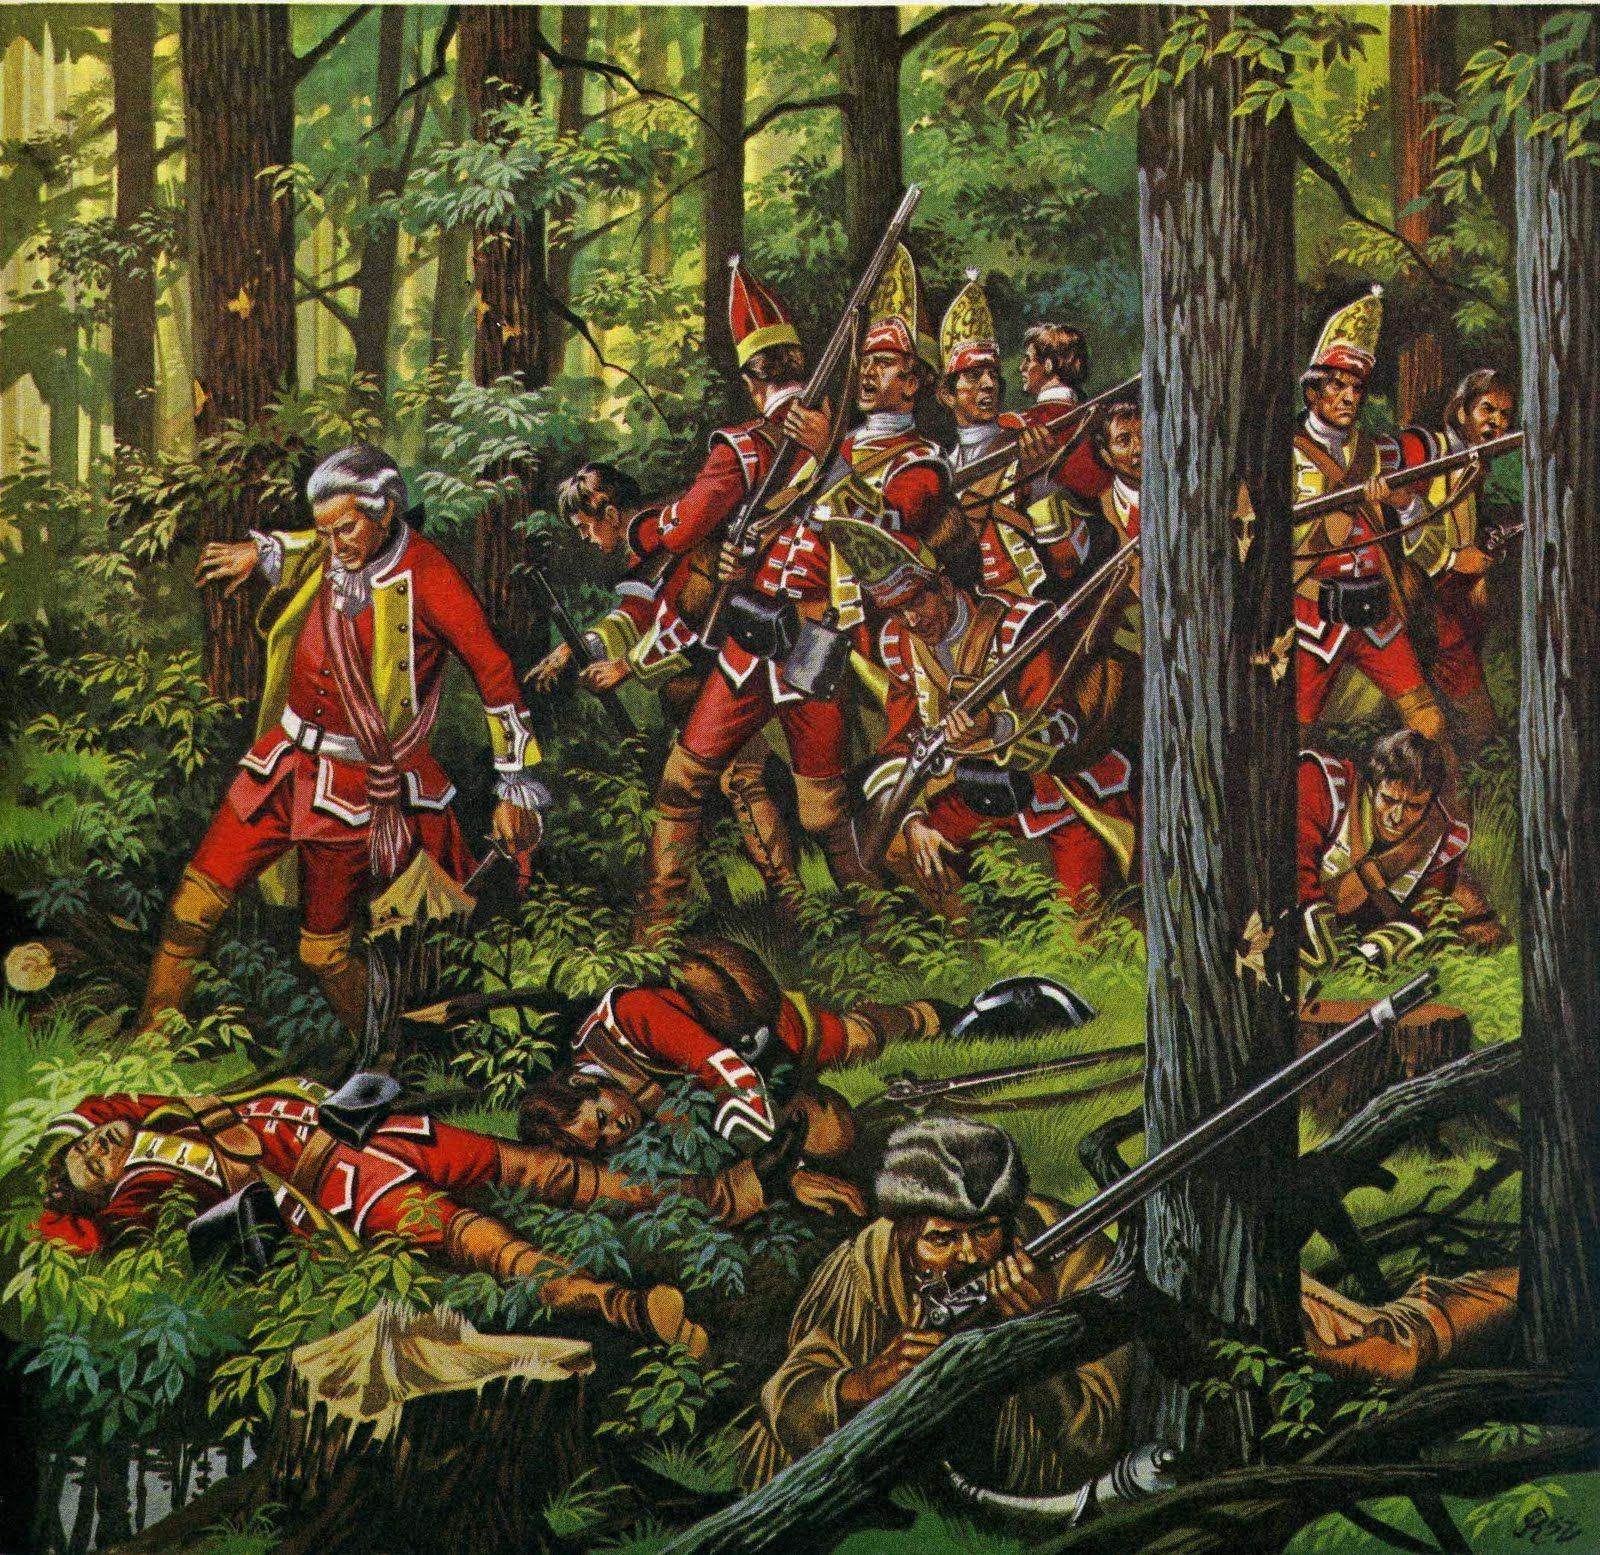 the american intervention during the french and indian wars The american indian wars (or indian wars) is the collective name for the various armed conflicts fought by european governments and colonists, and later the united states government and american settlers, against various american indian tribes.